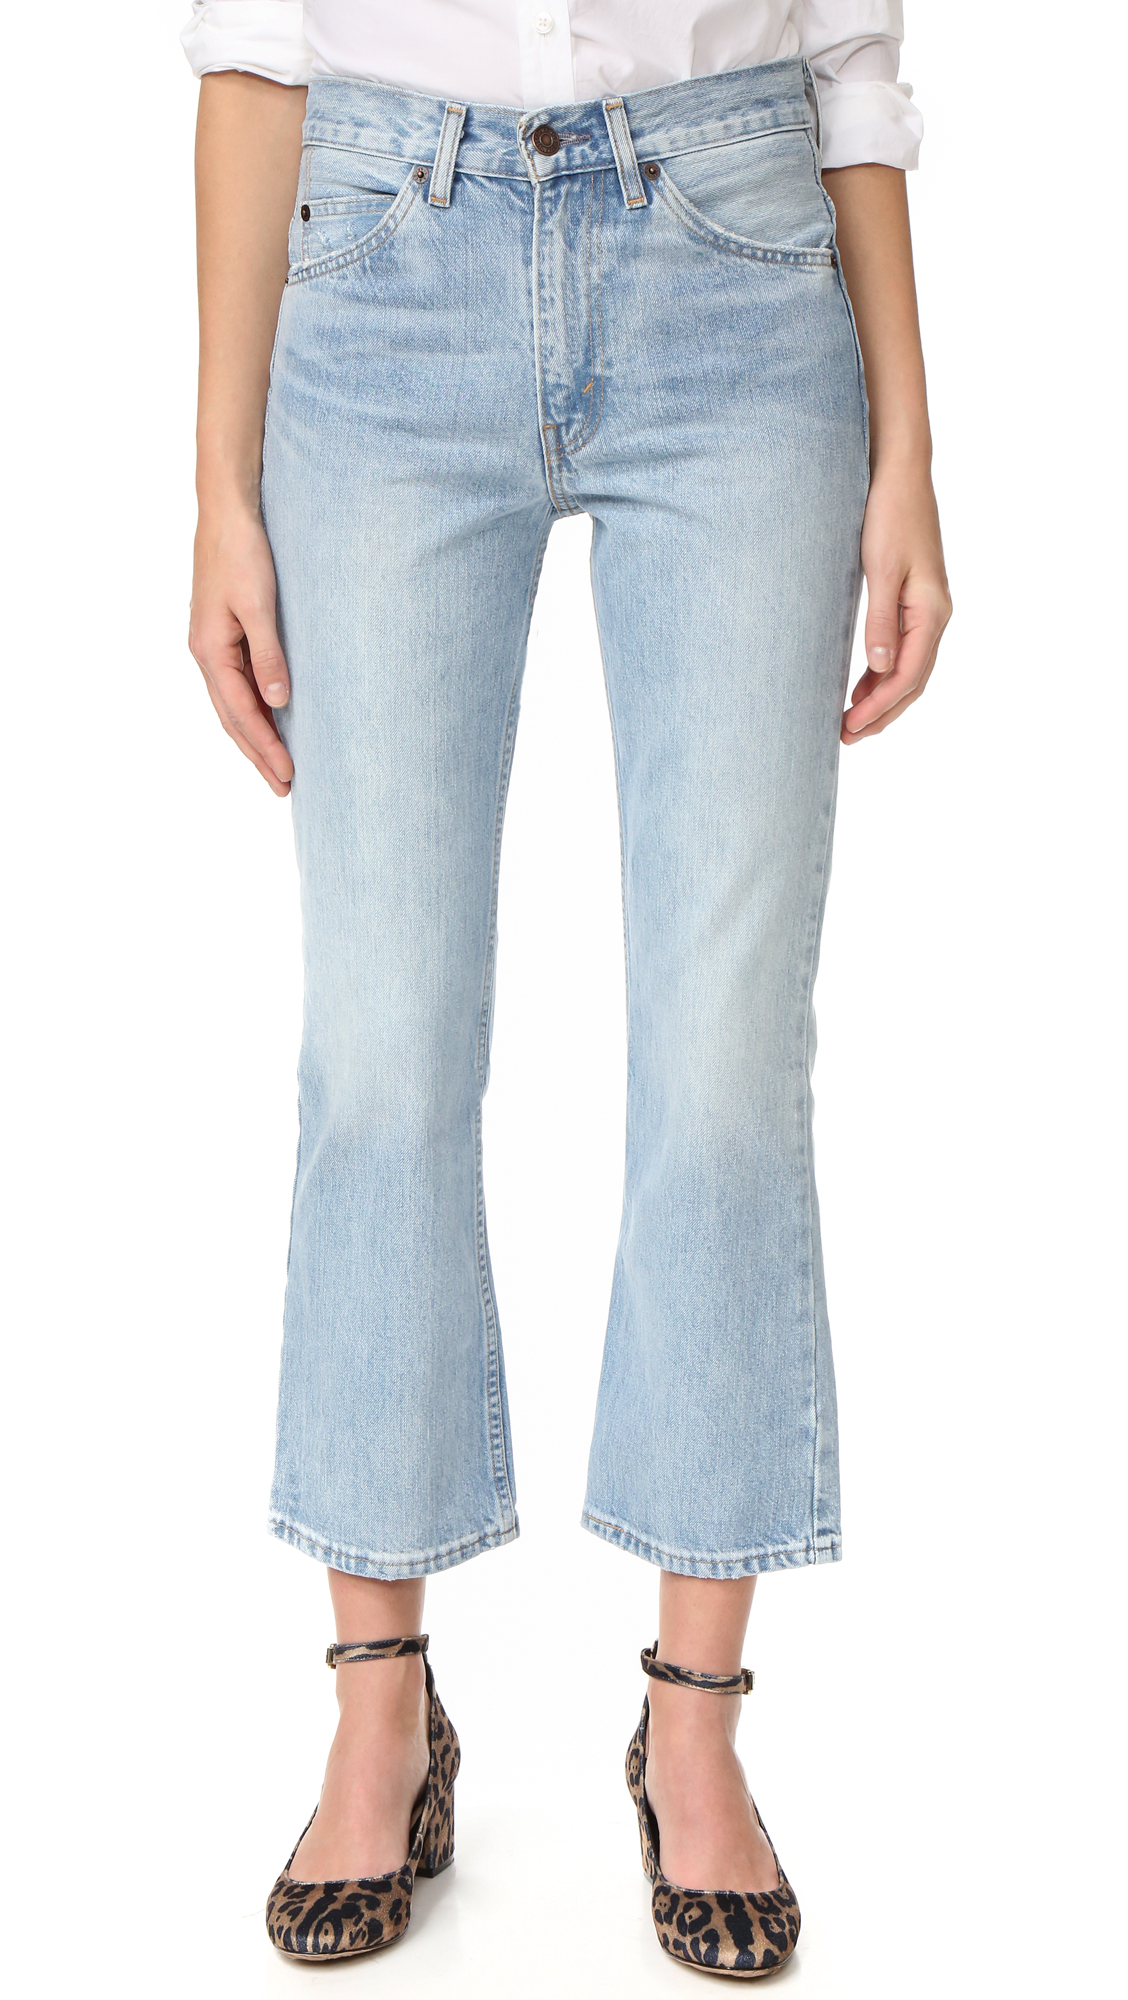 1960s inspired Levi's 517 boot cut jeans with heavy fading and a cropped profile. 5 pocket styling. Button closure and zip fly. Fabric: Denim. 100% cotton. Wash cold or dry clean. Imported, Turkey. Measurements Rise: 11in / 28cm Inseam: 26.75in / 68